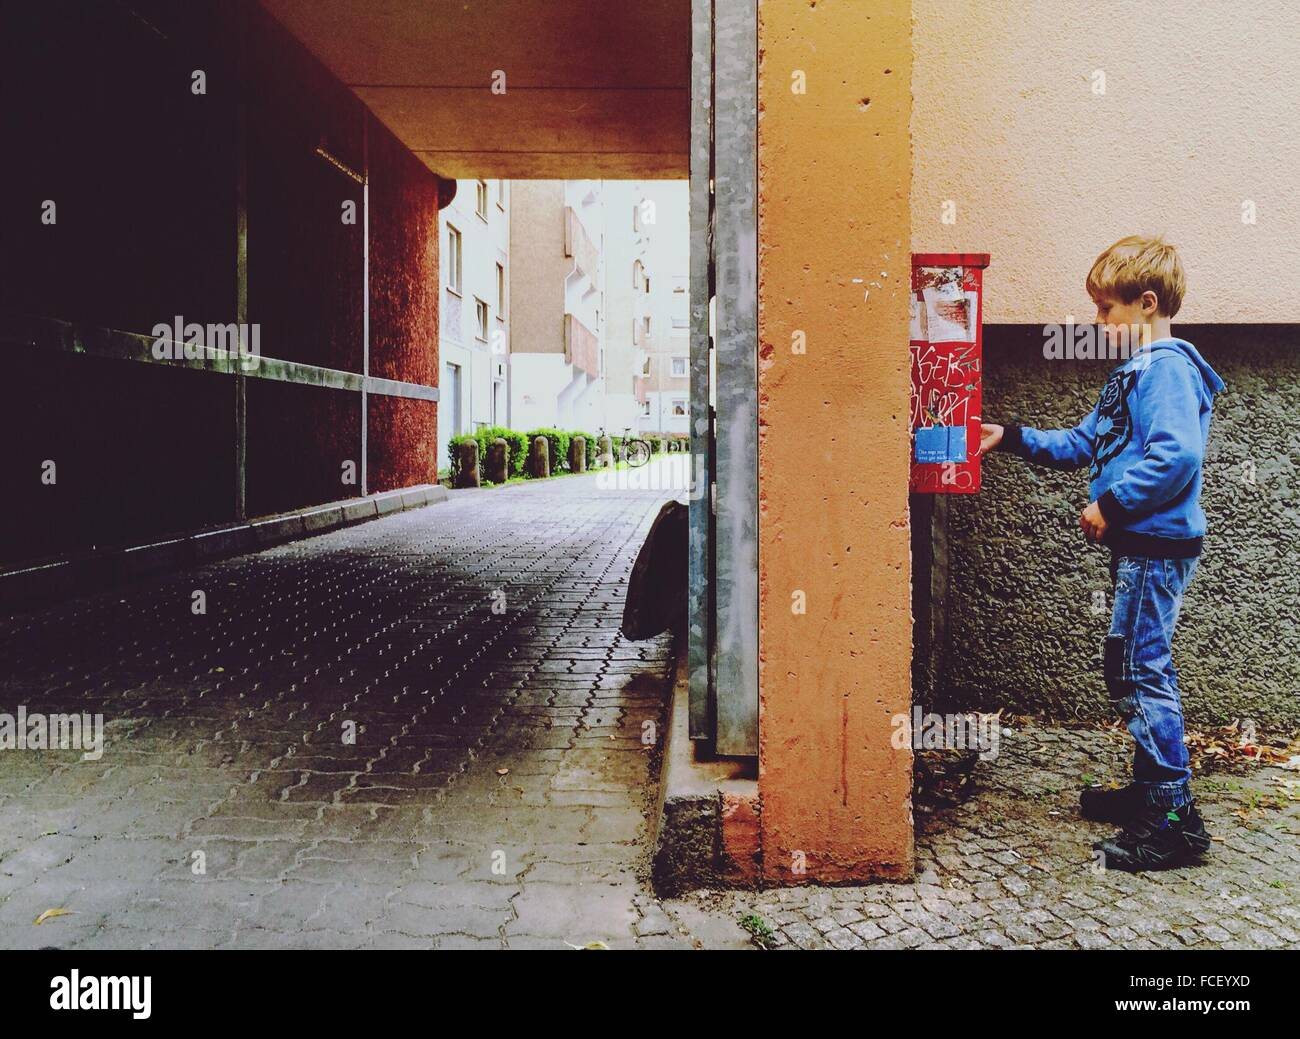 Boy Putting Letter In A Mailbox - Stock Image